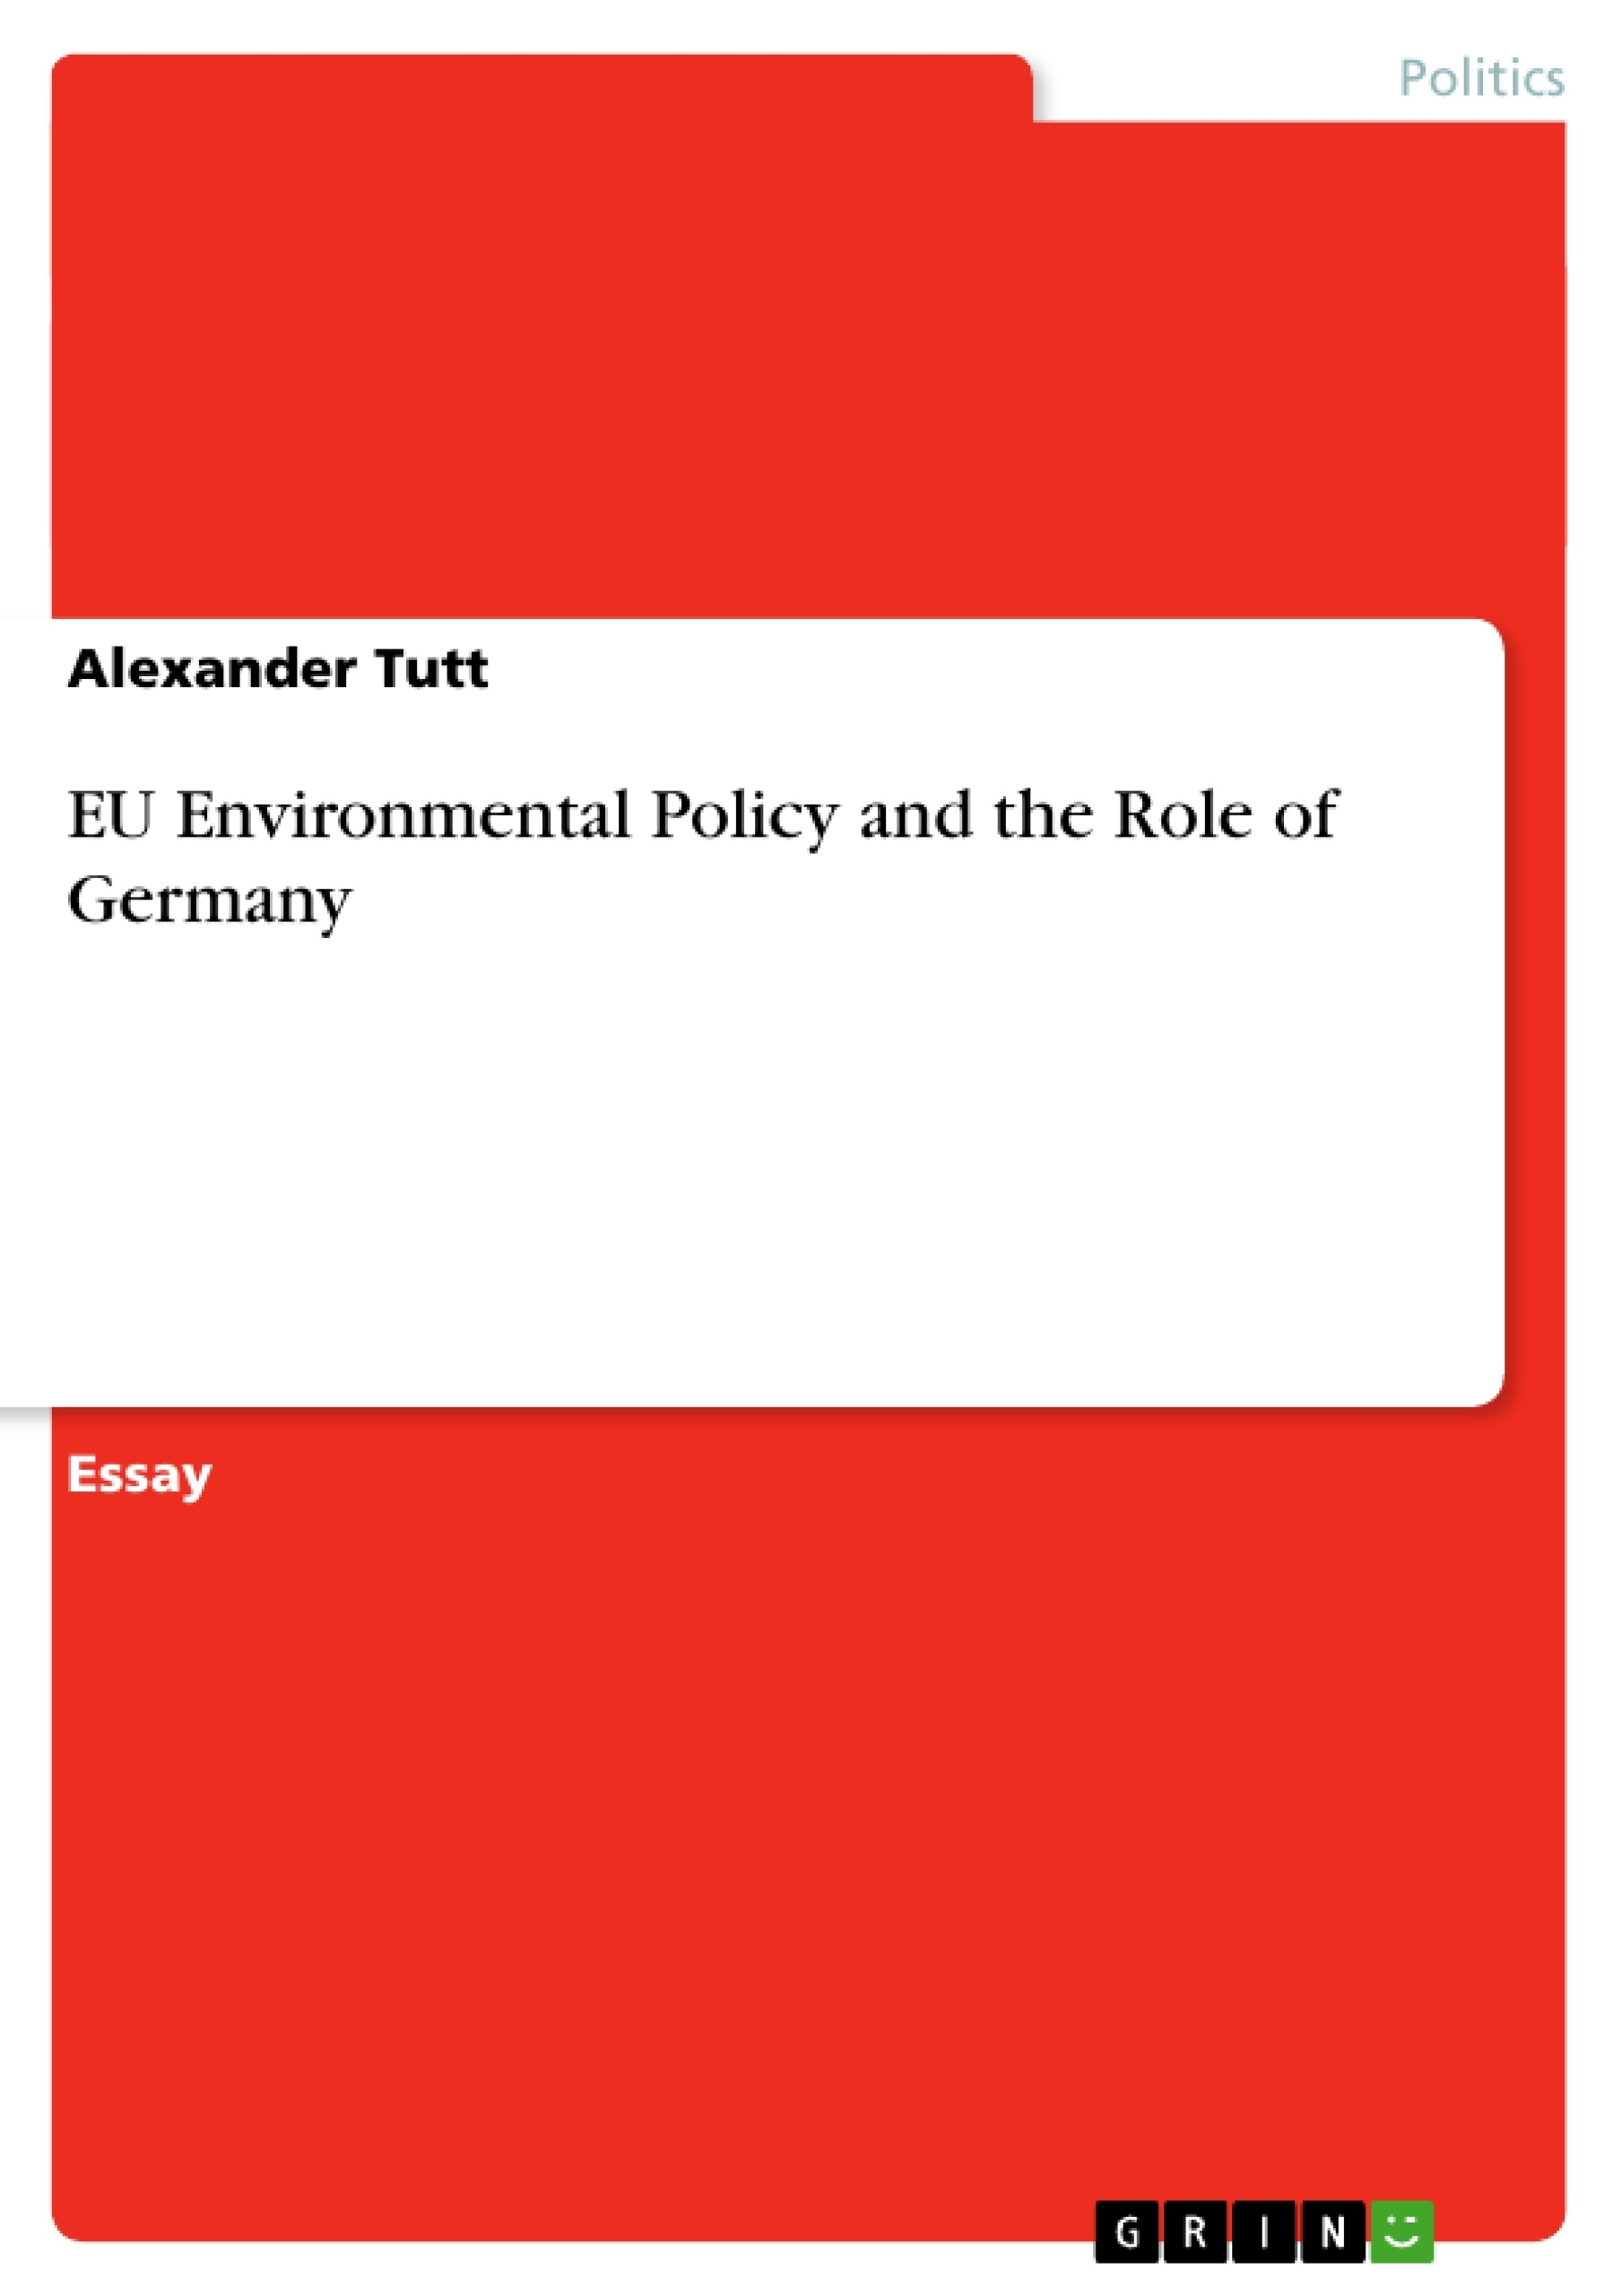 Title: EU Environmental Policy and the Role of Germany